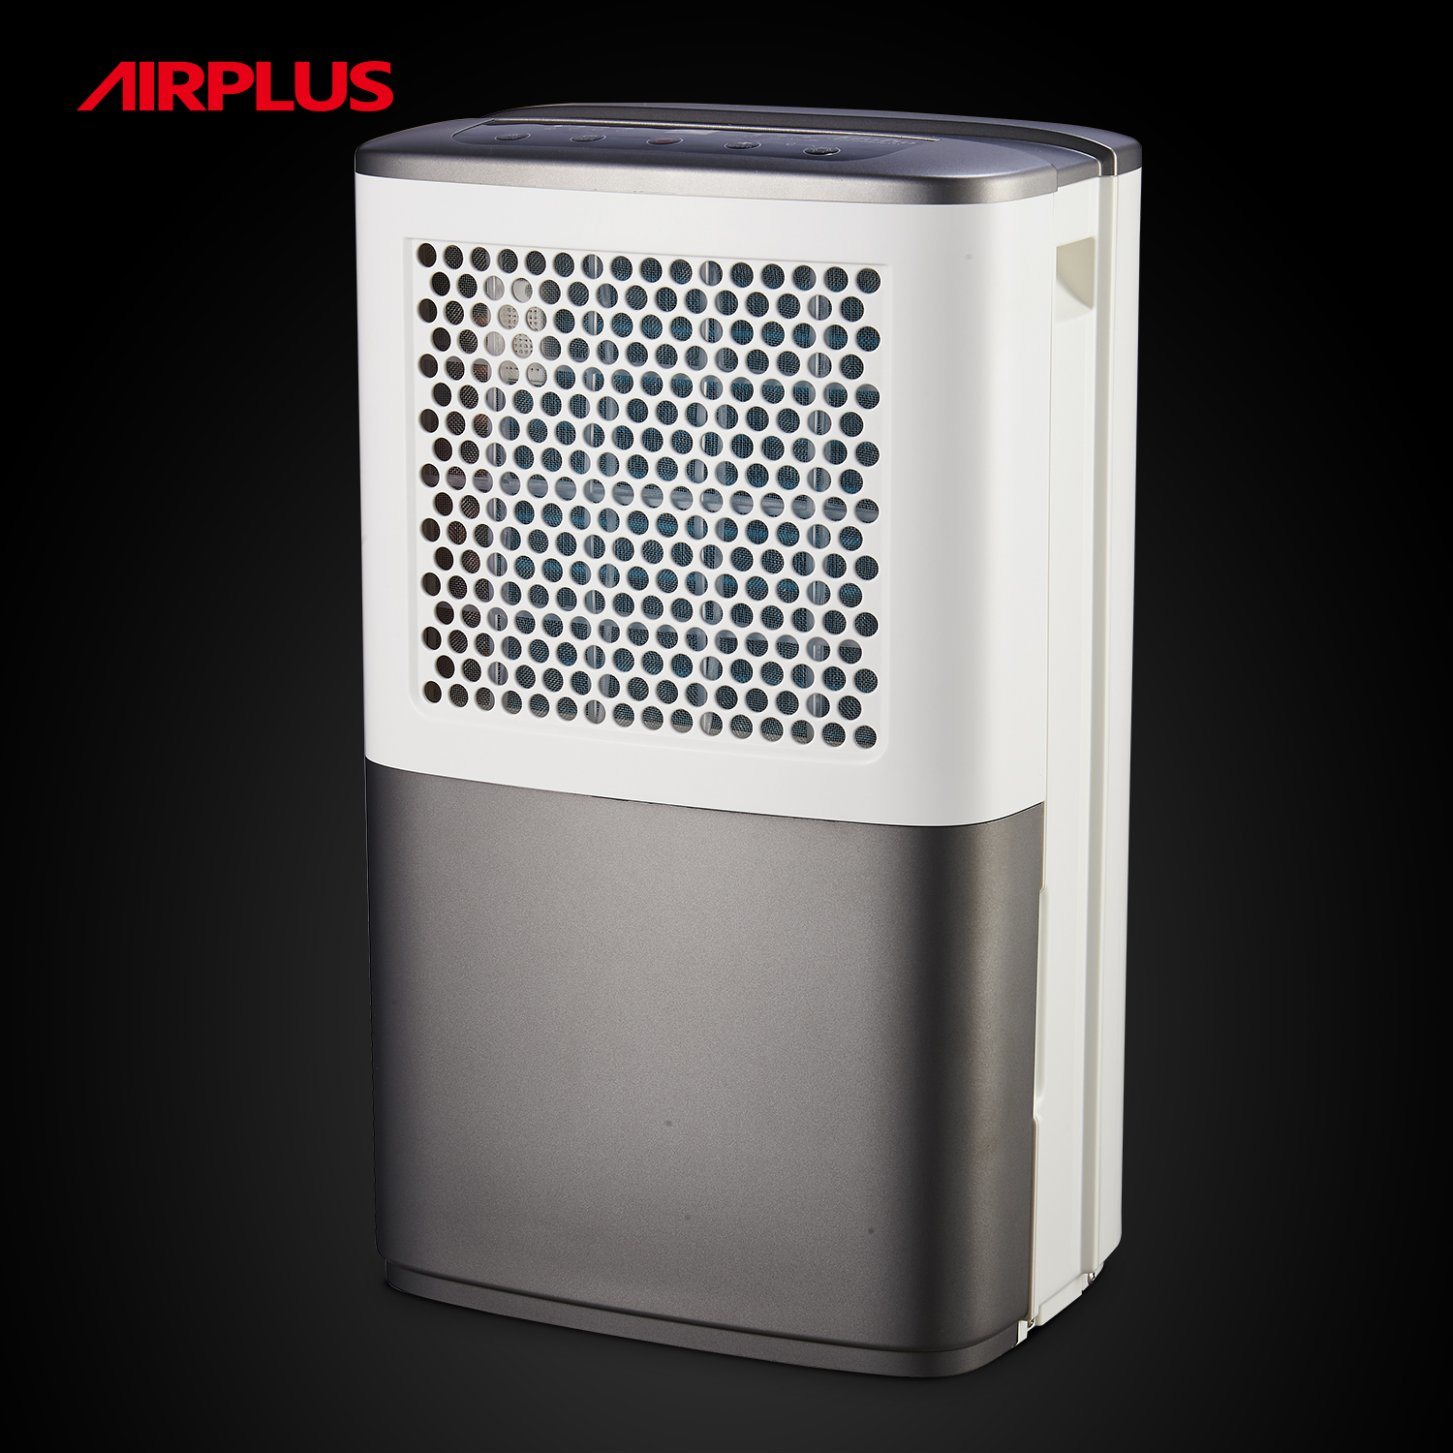 12L/Day Dehumidifier with Ionizer for Home (AP12-101EE)